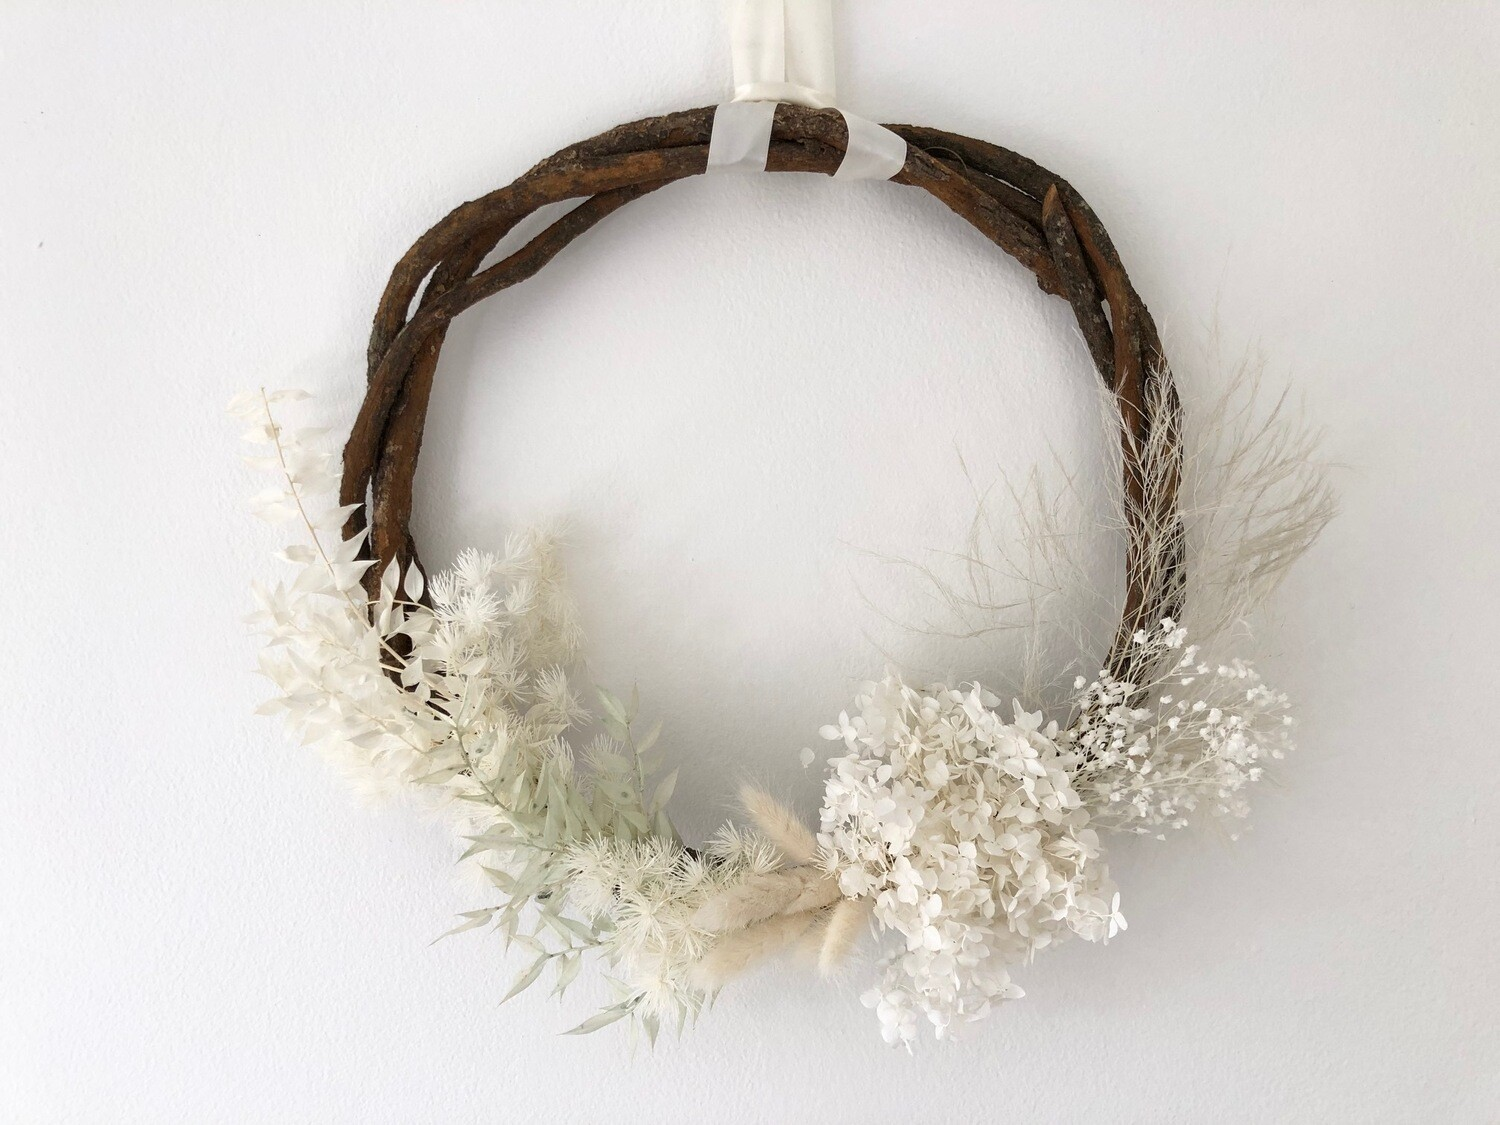 Wreath Workshop - Preserved Sunday 6th December 9:30am